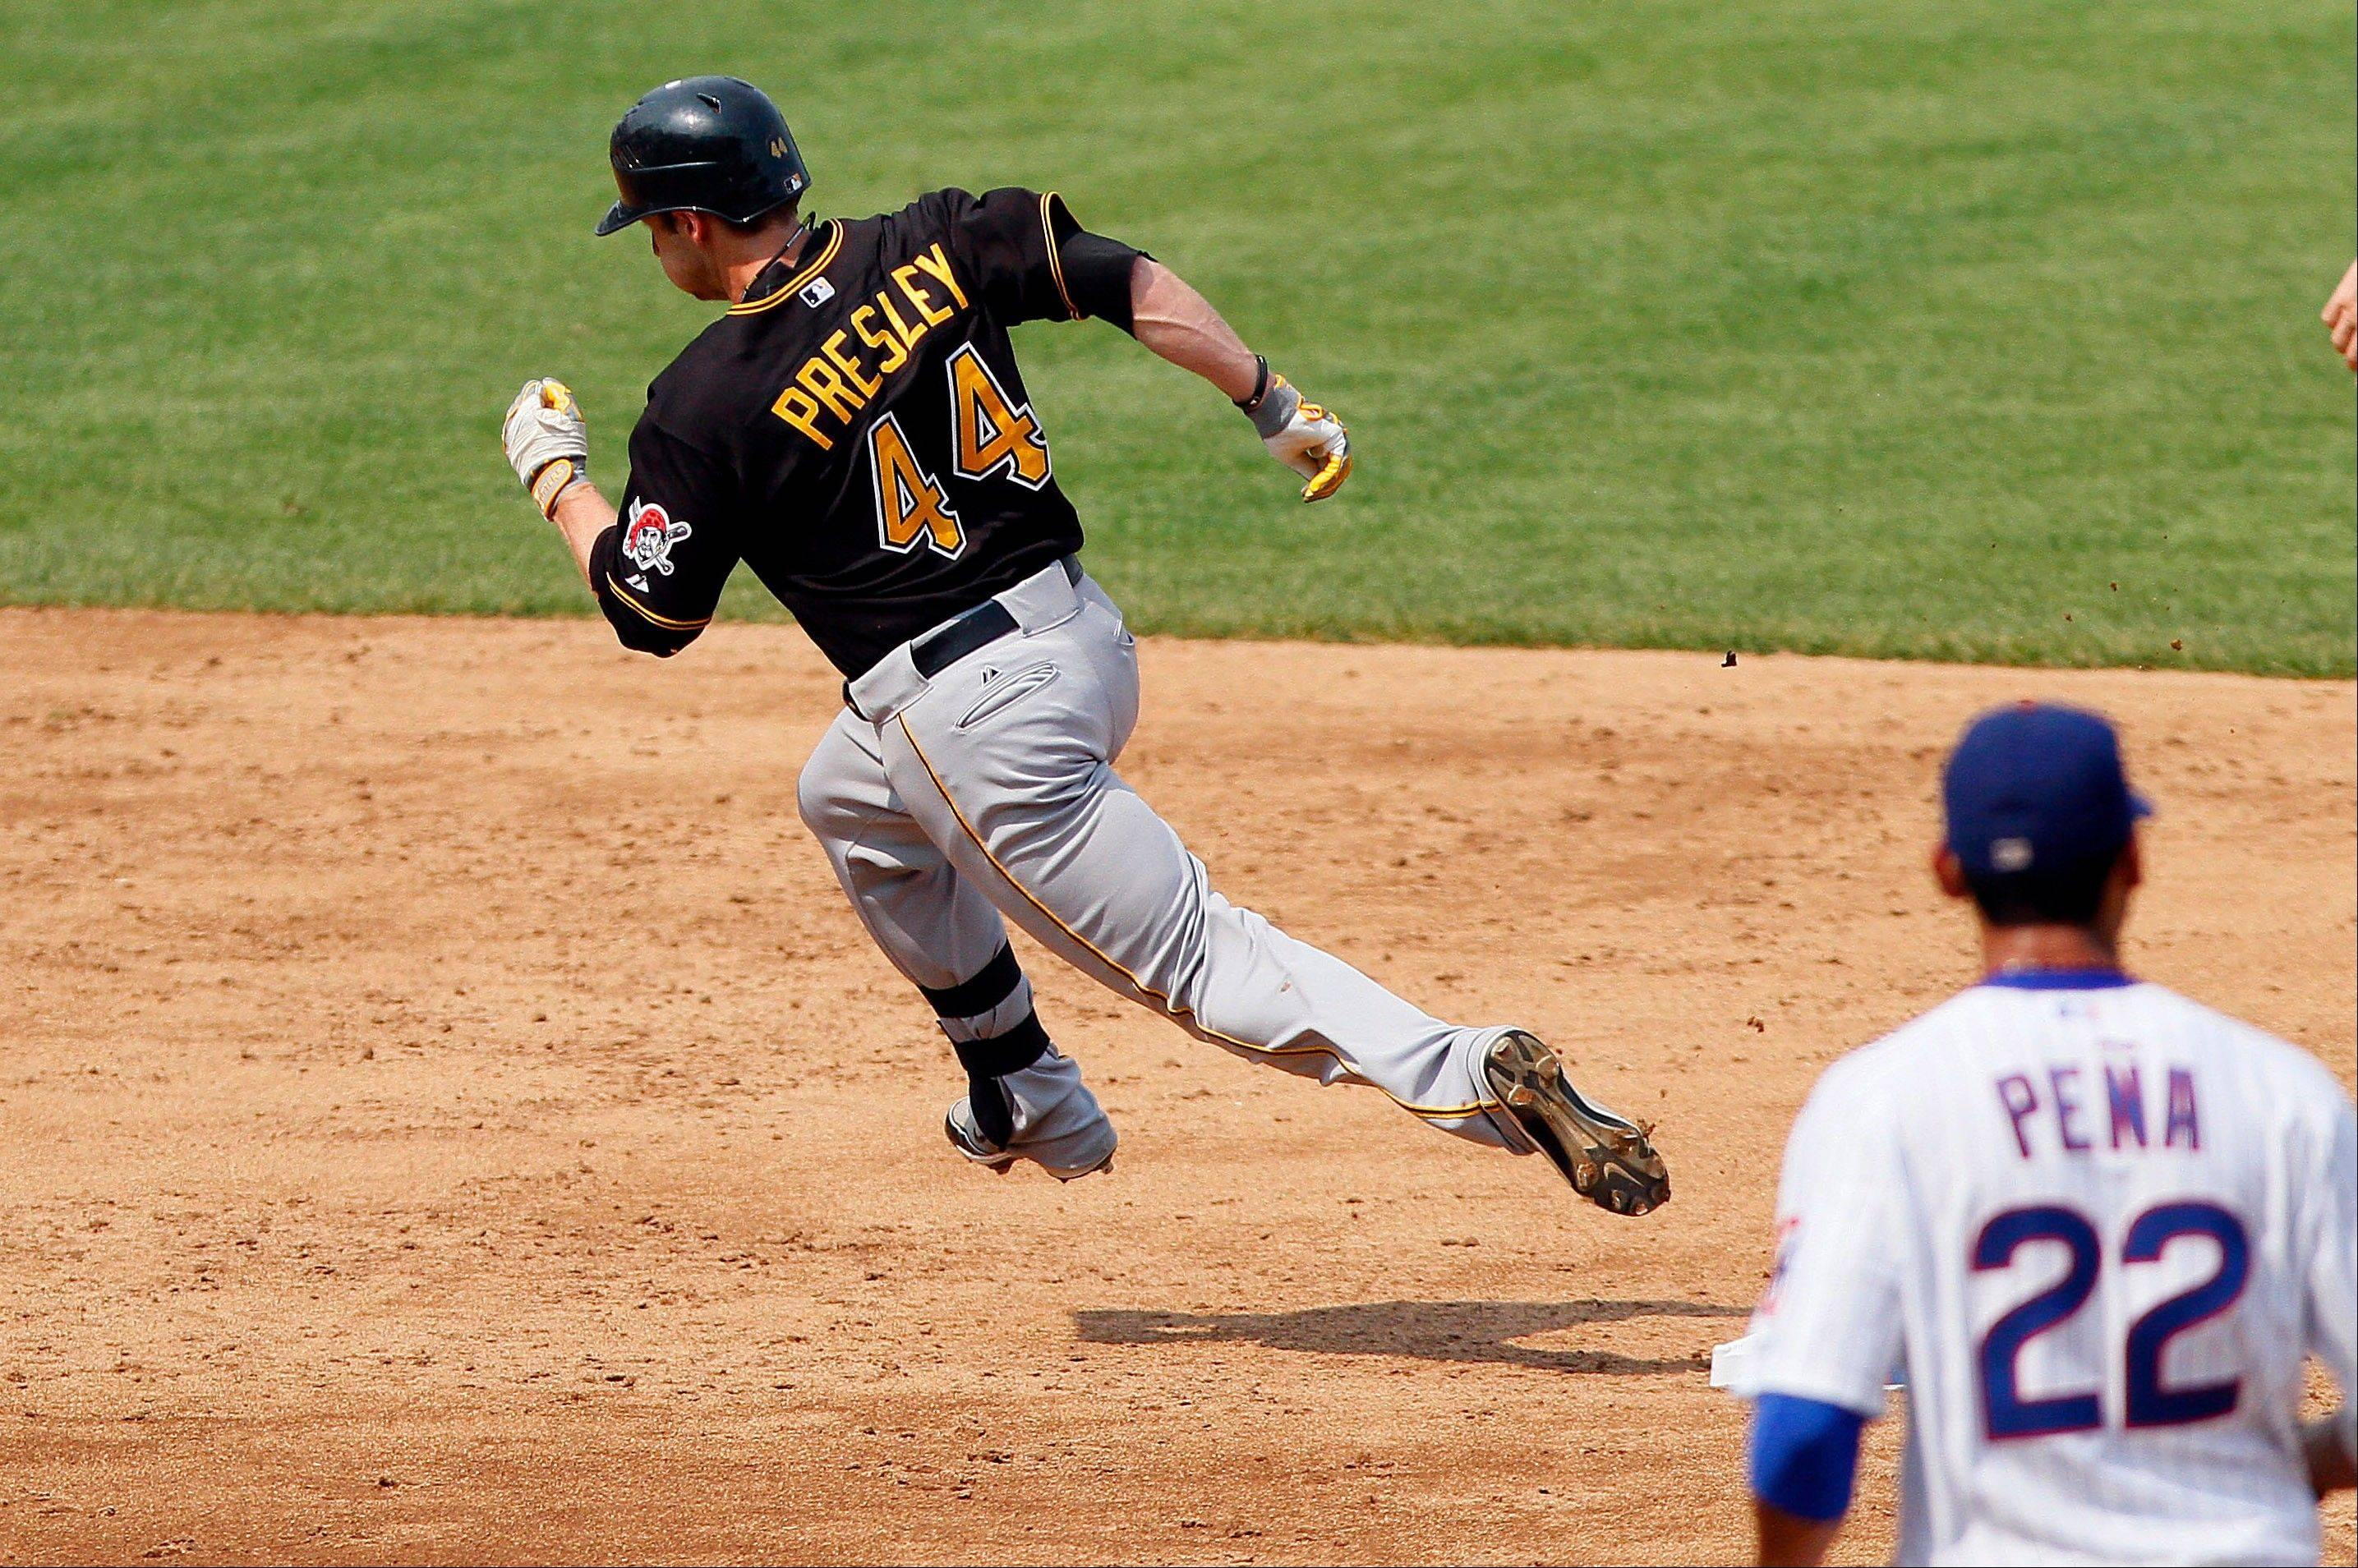 Pittsburgh Pirates' Alex Presley rounds second base and heads to third with a triple. The Cubs had solid starting pitching again from Ryan Dempster, but the offense could do little.